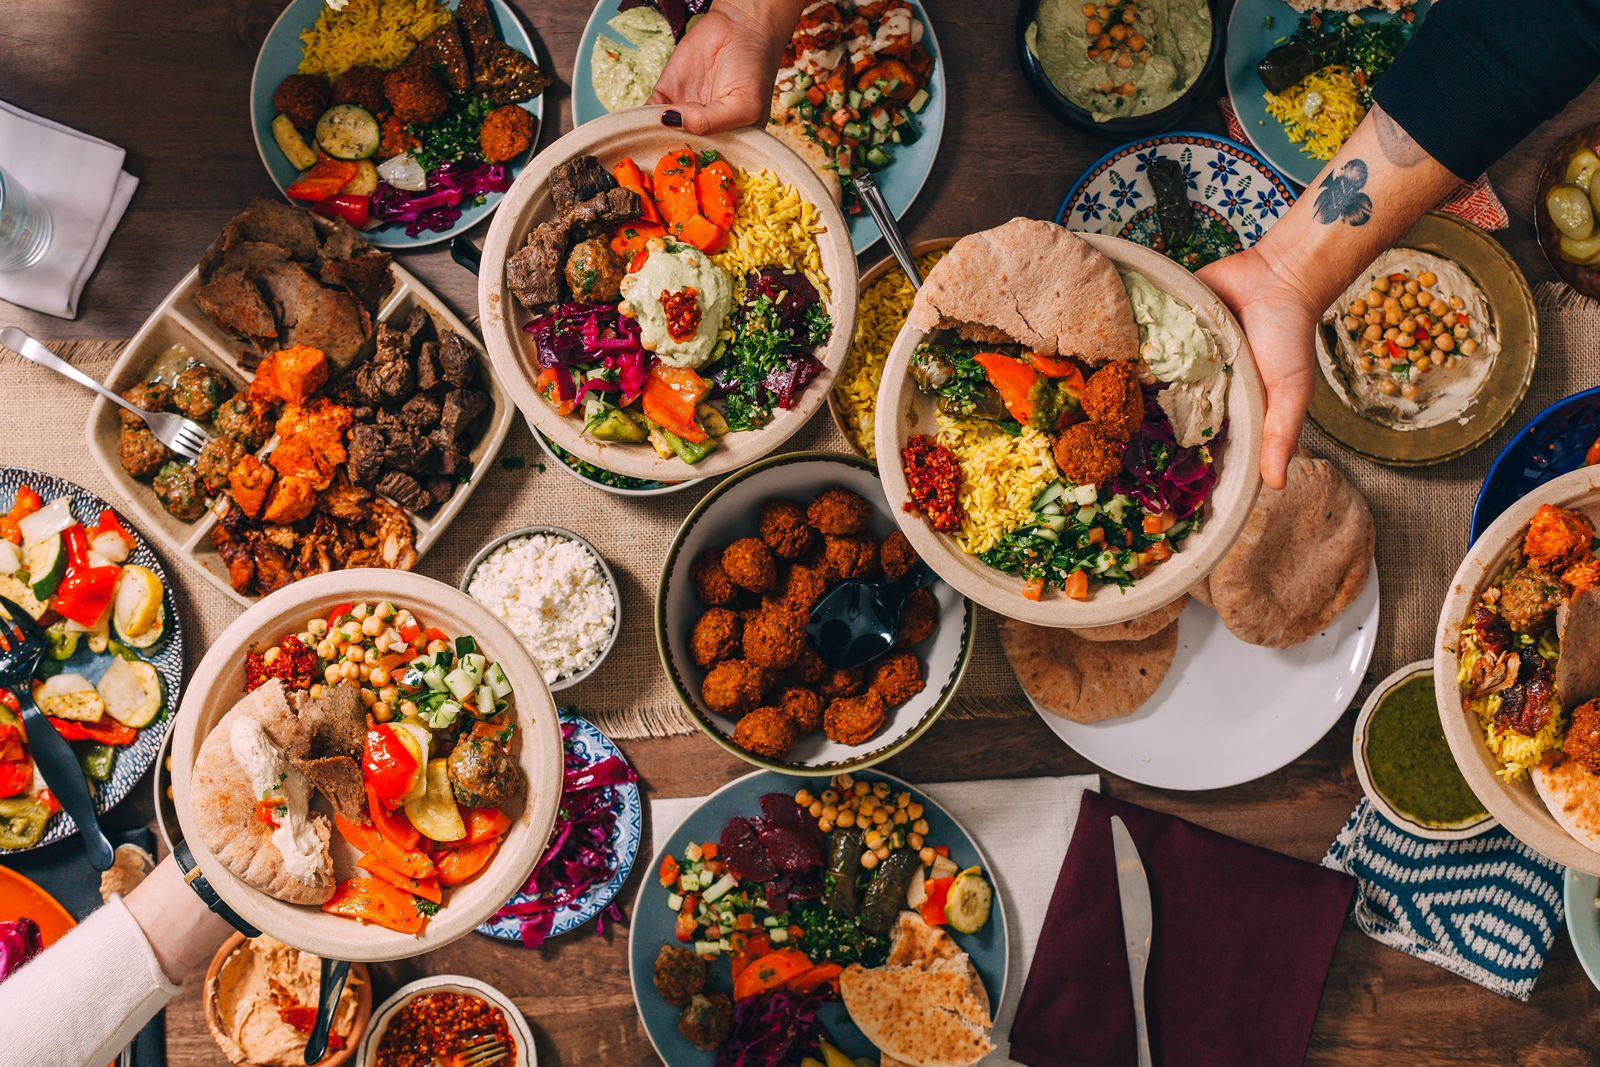 Popular NYC Concept, The Hummus & Pita Co. Touches Down in California With Flagship Los Angeles Location